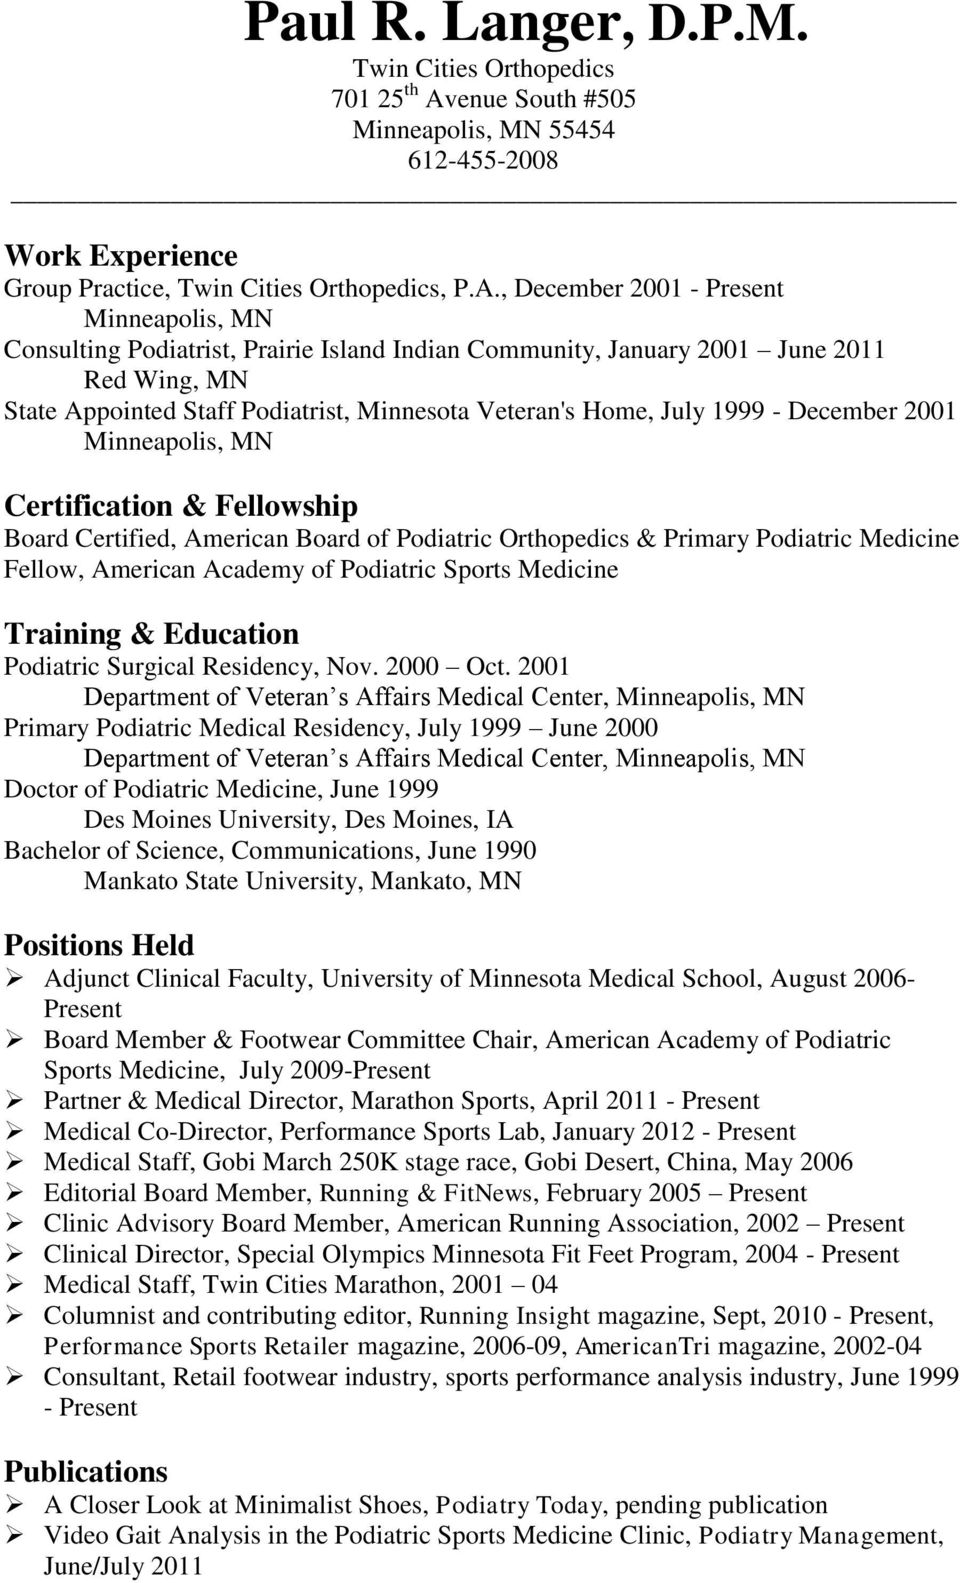 , December 2001 - Present Minneapolis, MN Consulting Podiatrist, Prairie Island Indian Community, January 2001 June 2011 Red Wing, MN State Appointed Staff Podiatrist, Minnesota Veteran's Home, July